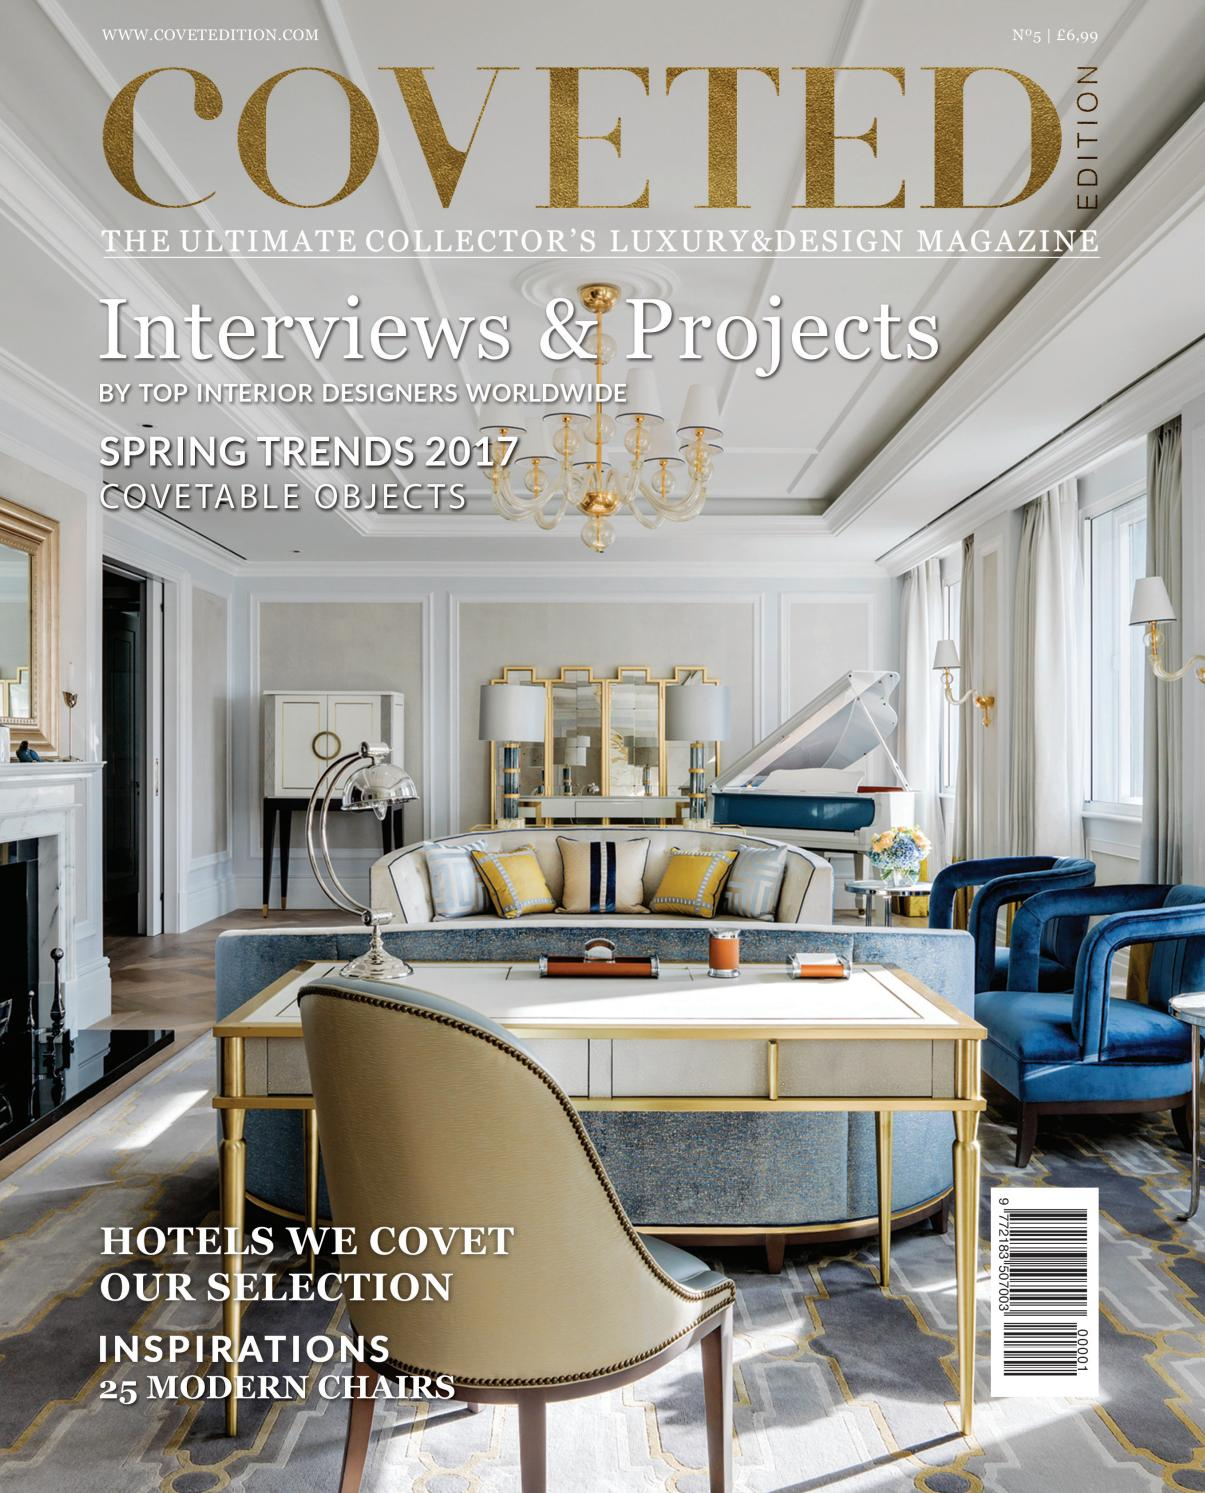 Coveted Magazine 05 By Covet Edition Issuu